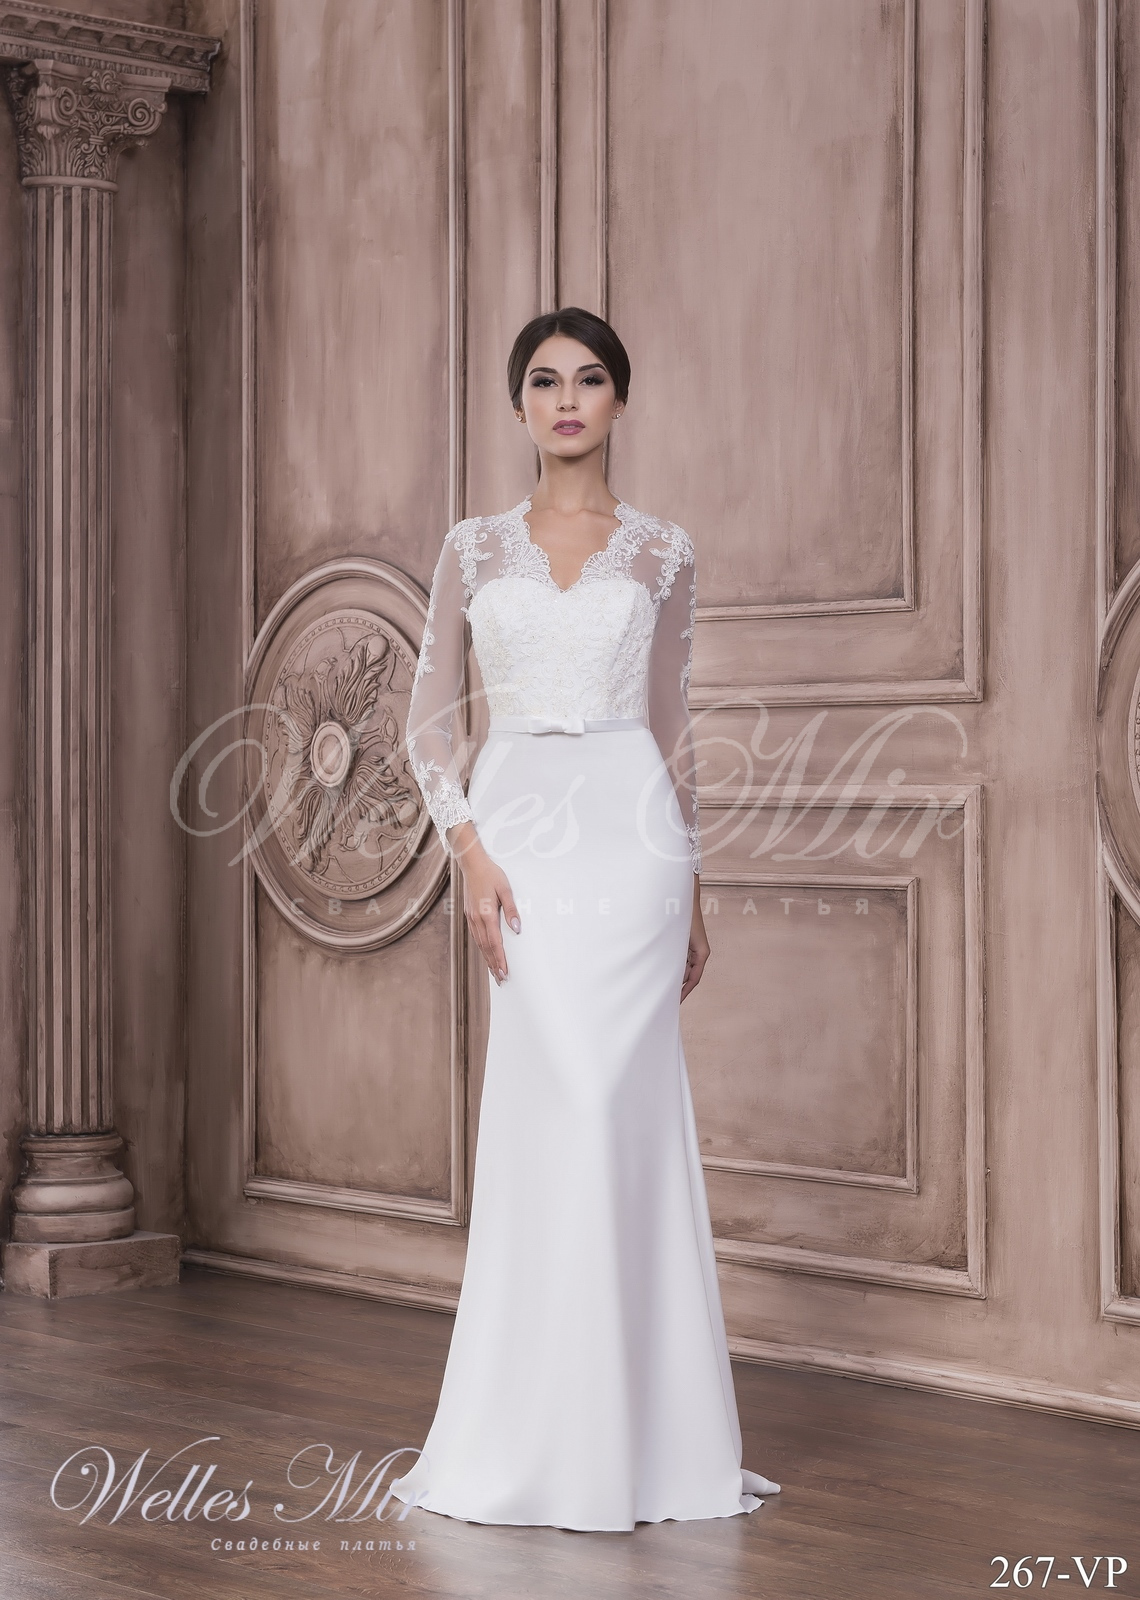 Wedding dresses 267-VP